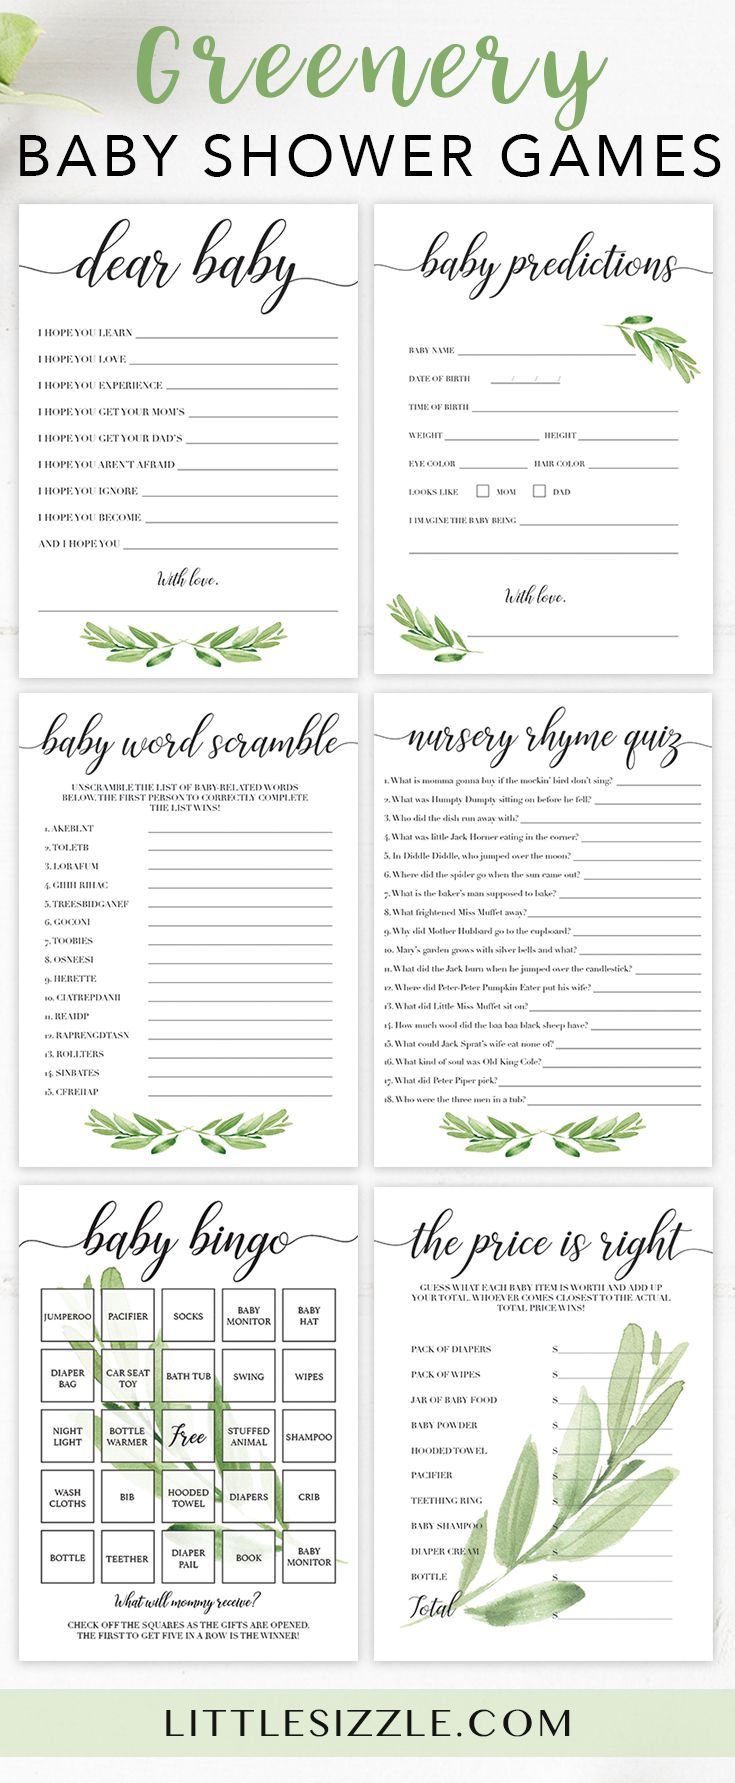 Greenery baby shower ideas for neutral shower by LittleSizzle. Print your own green leaves baby shower games and keep your guests entertained during the party. This green baby shower game pack is perfect for any greenery baby shower and includes all the fun, easy and popular games you need. Create meaningful keepsakes for mom-to-be with our baby wishes cards and advice cards and entertain large groups of guests with baby bingo and the price is right. #babyshowergames #babyshowerideas…